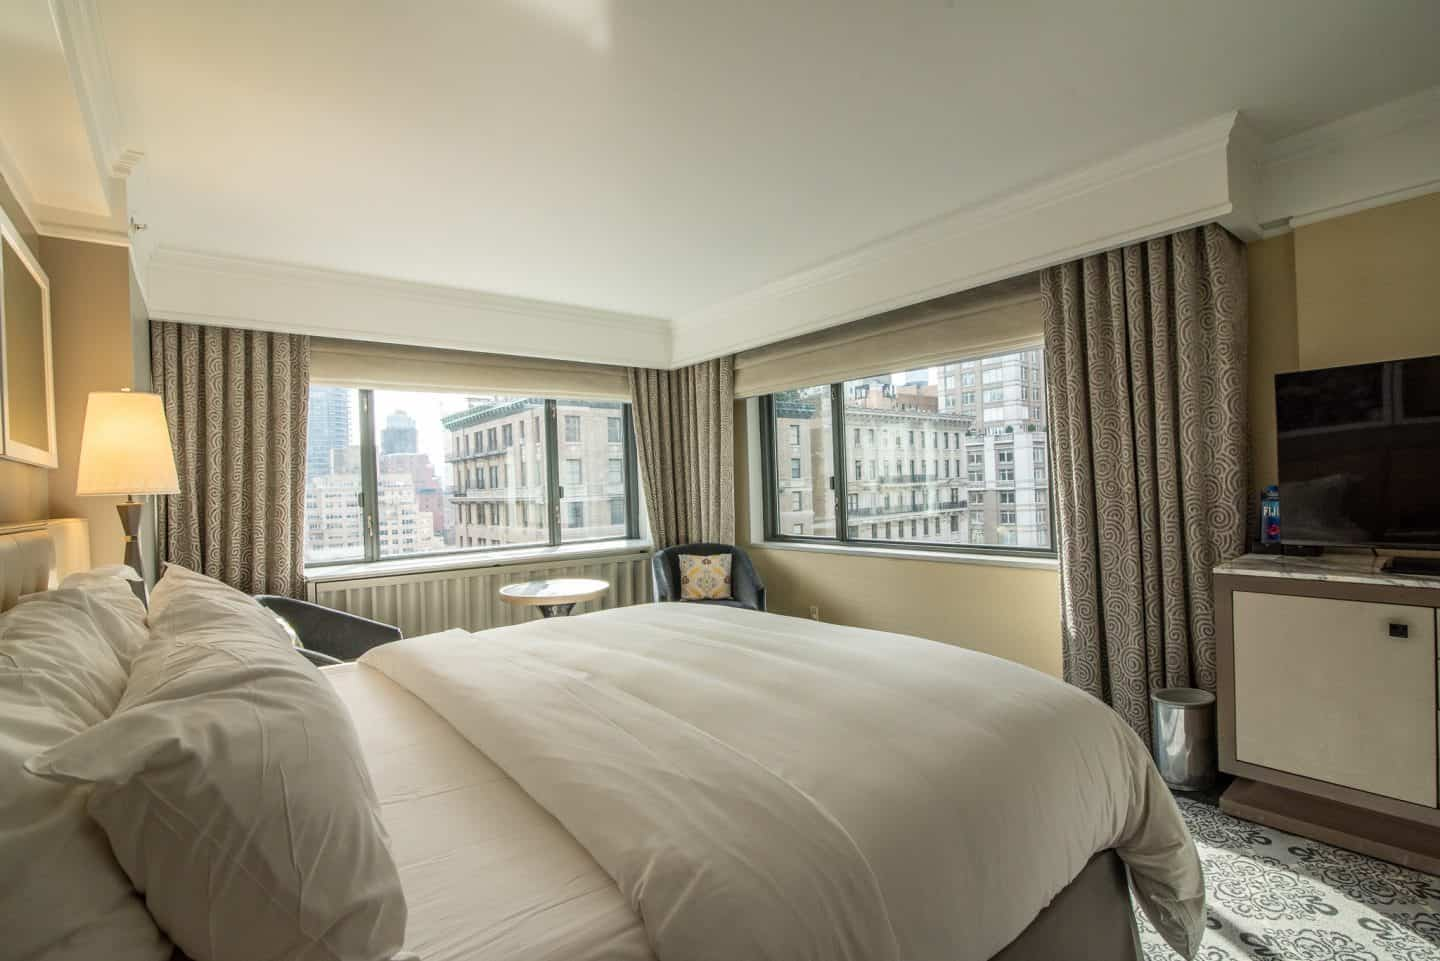 Places to stay in new york city